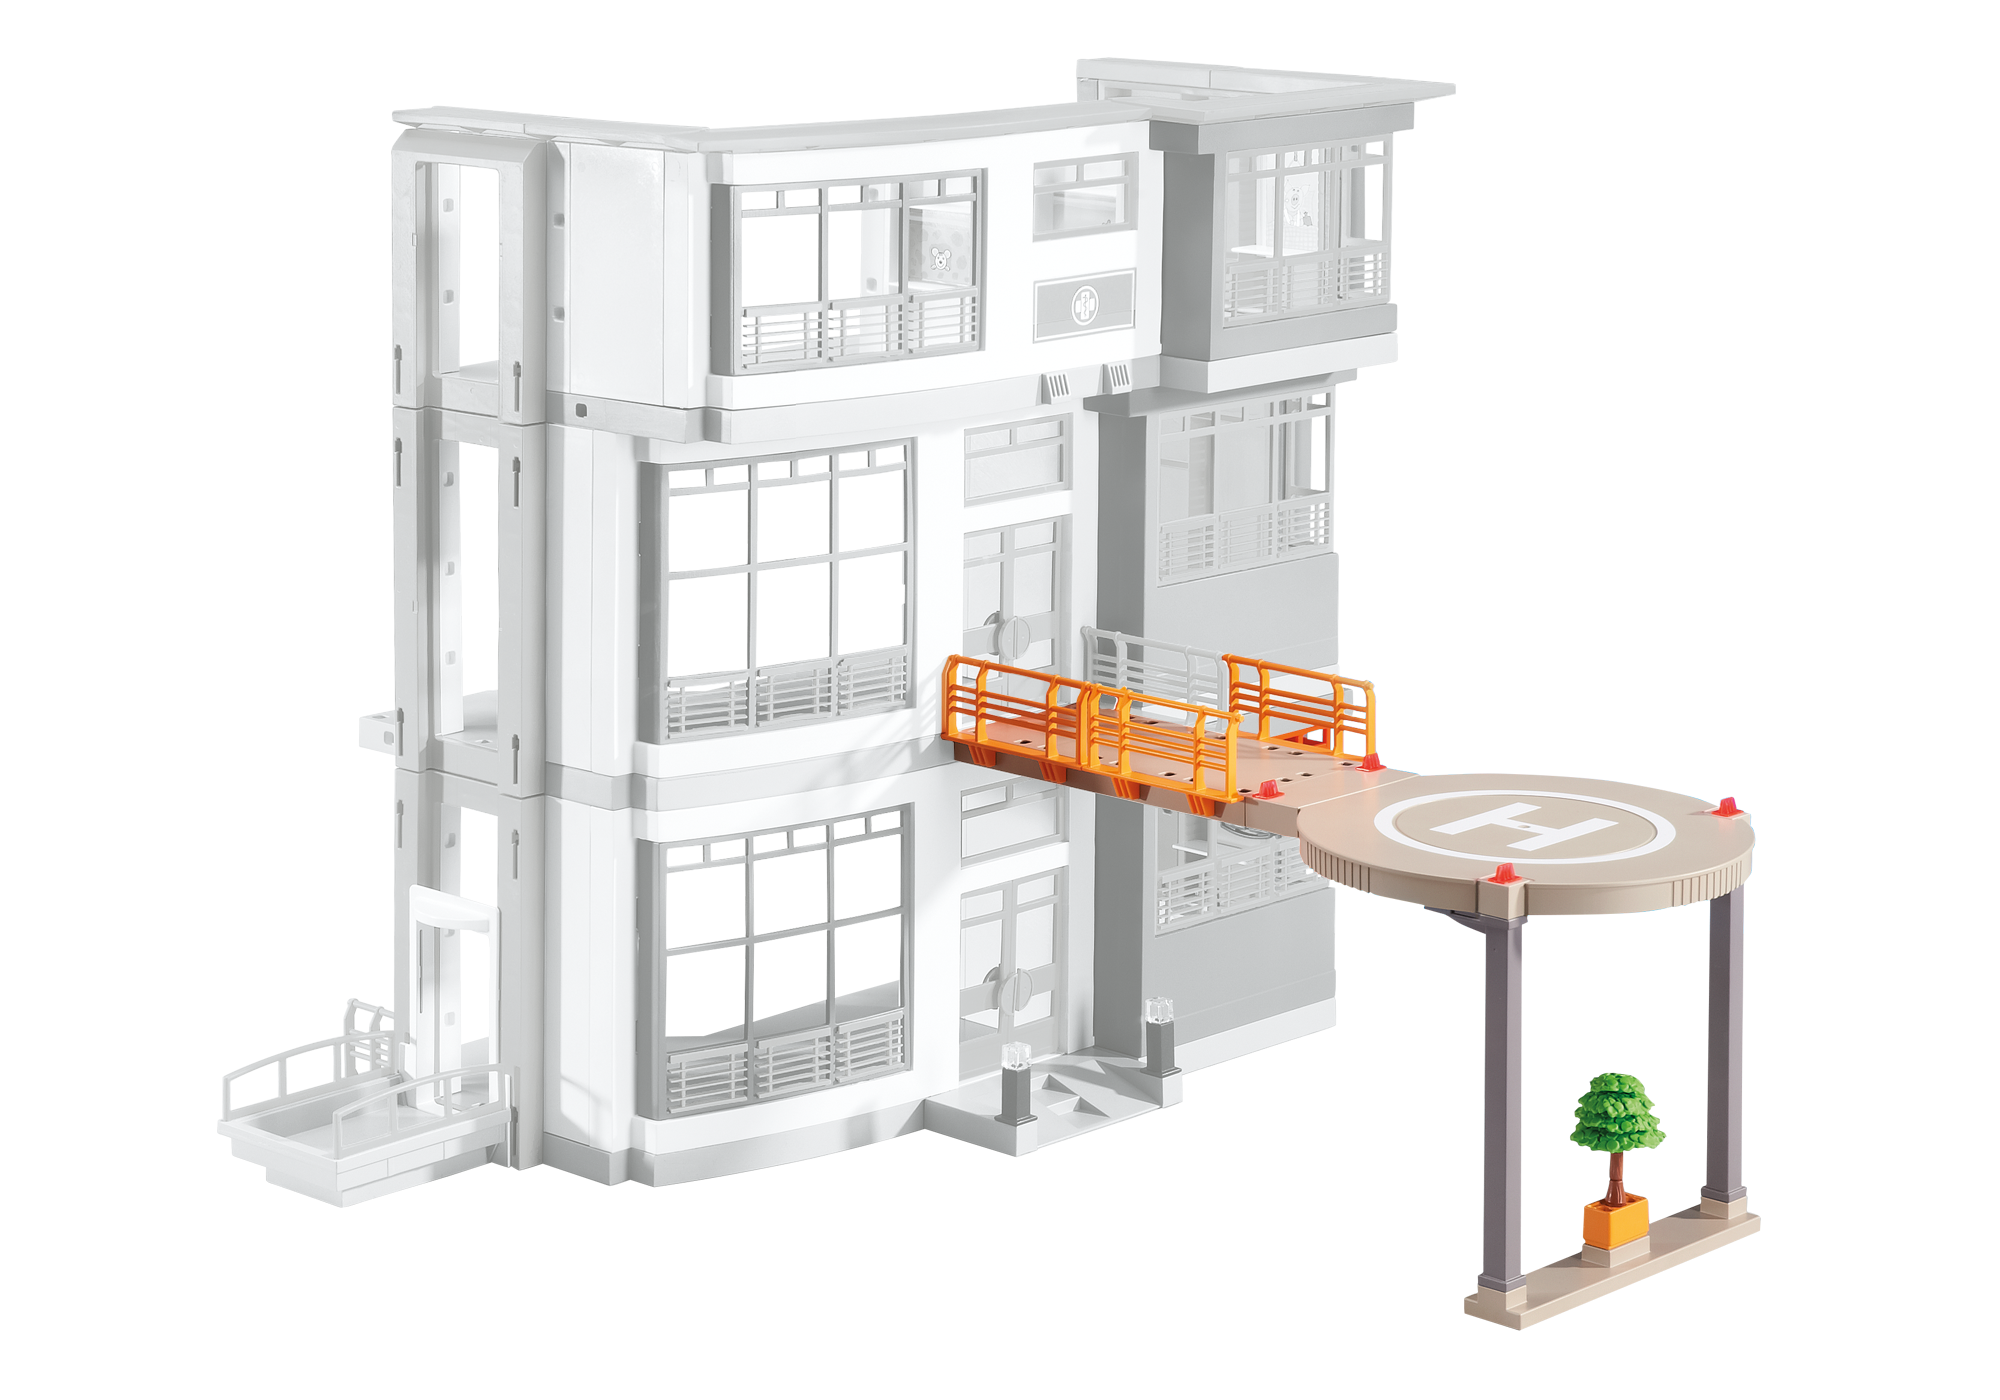 http://media.playmobil.com/i/playmobil/6445_product_detail/Helipad for Furnished Children's Hospital (6657)